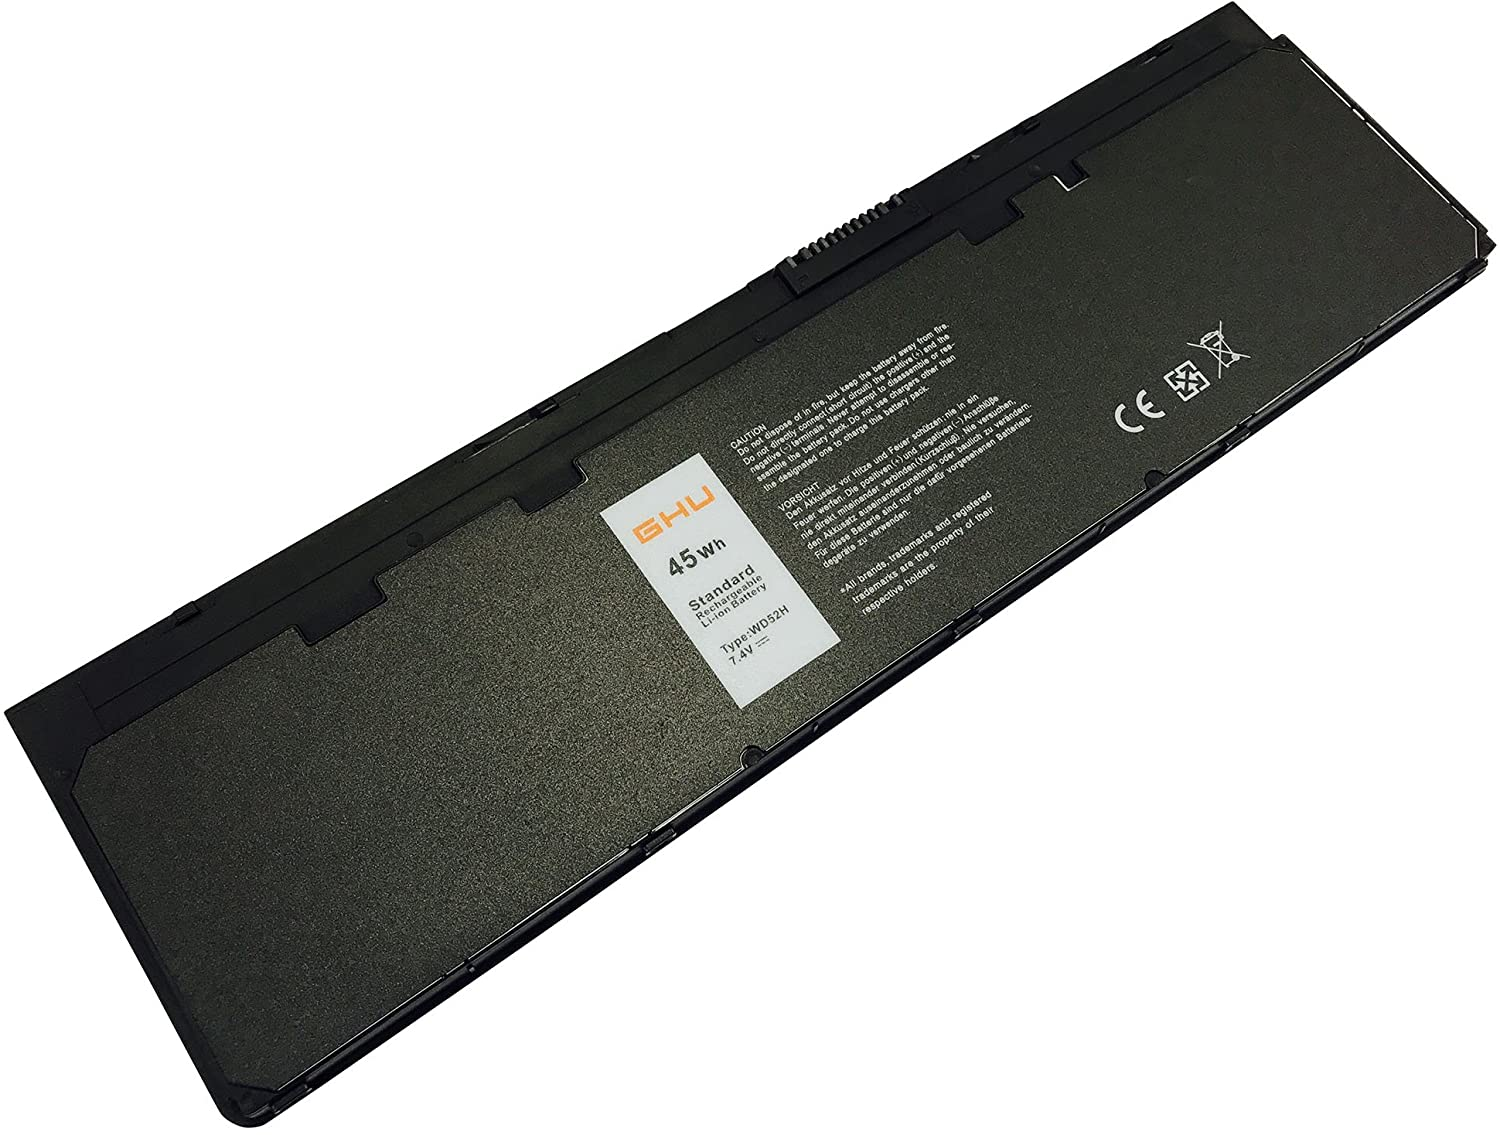 New GHU Battery 45 Wh Replacement for VFV59 HJ8KP F3G33 GD076 J31N7 0KKHY1 0KWFFN 0VFV59 0WG6RP Compatible for Dell Latitude Notebook Ultrabook E7240 E7250 Fit W57CV J31N7 WD52H ght4x